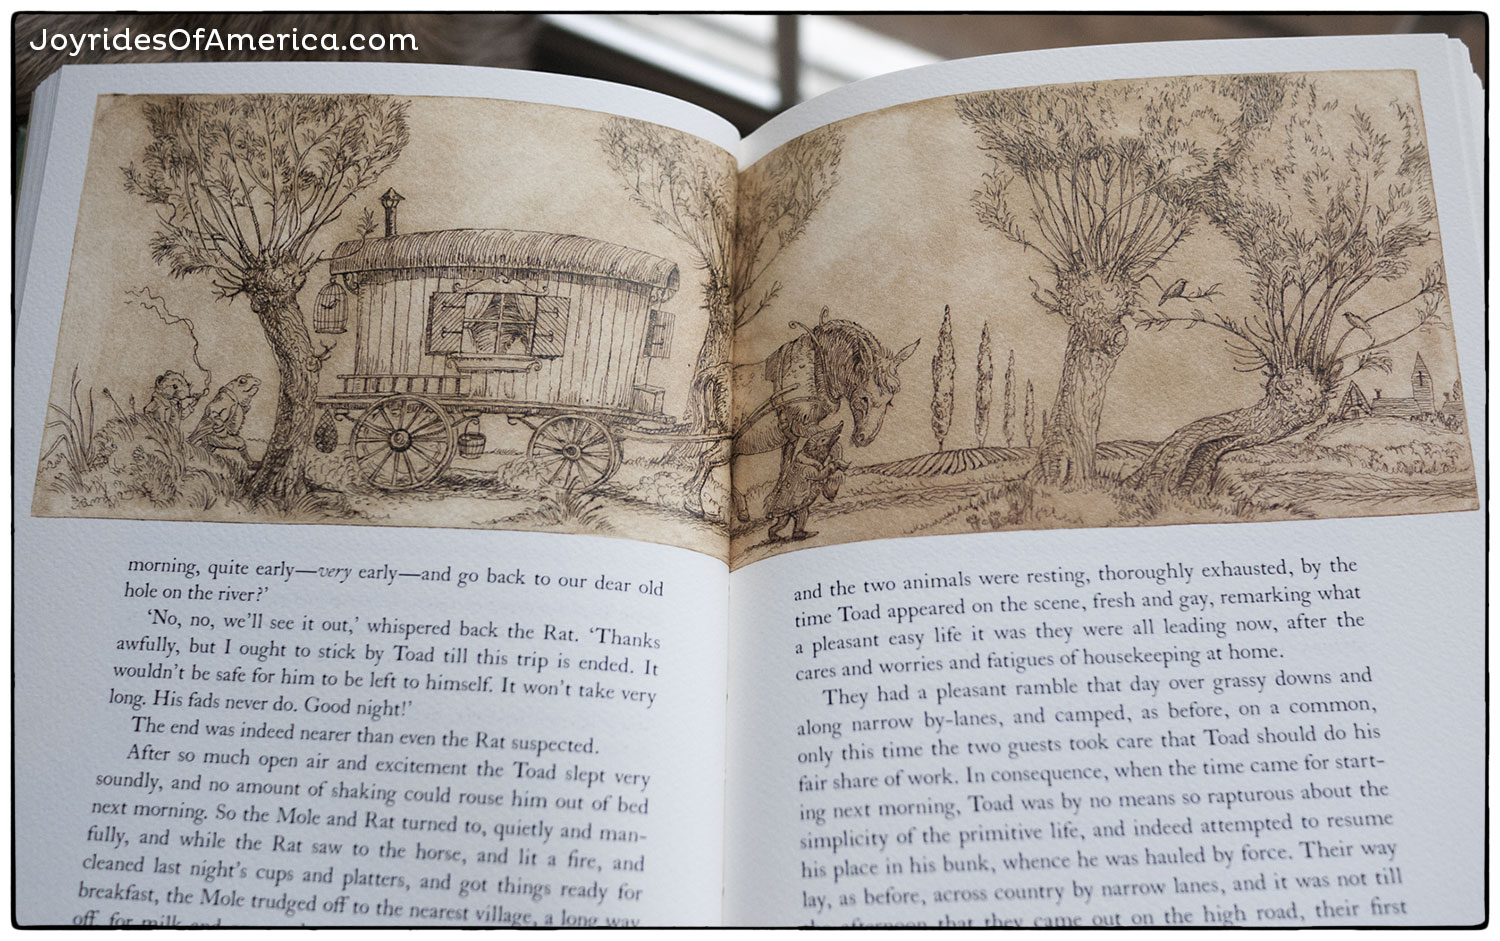 The Wind in the Willows by Kenneth Grahame, illustrations byCharles van Sandwyk,published by the Folio Society.